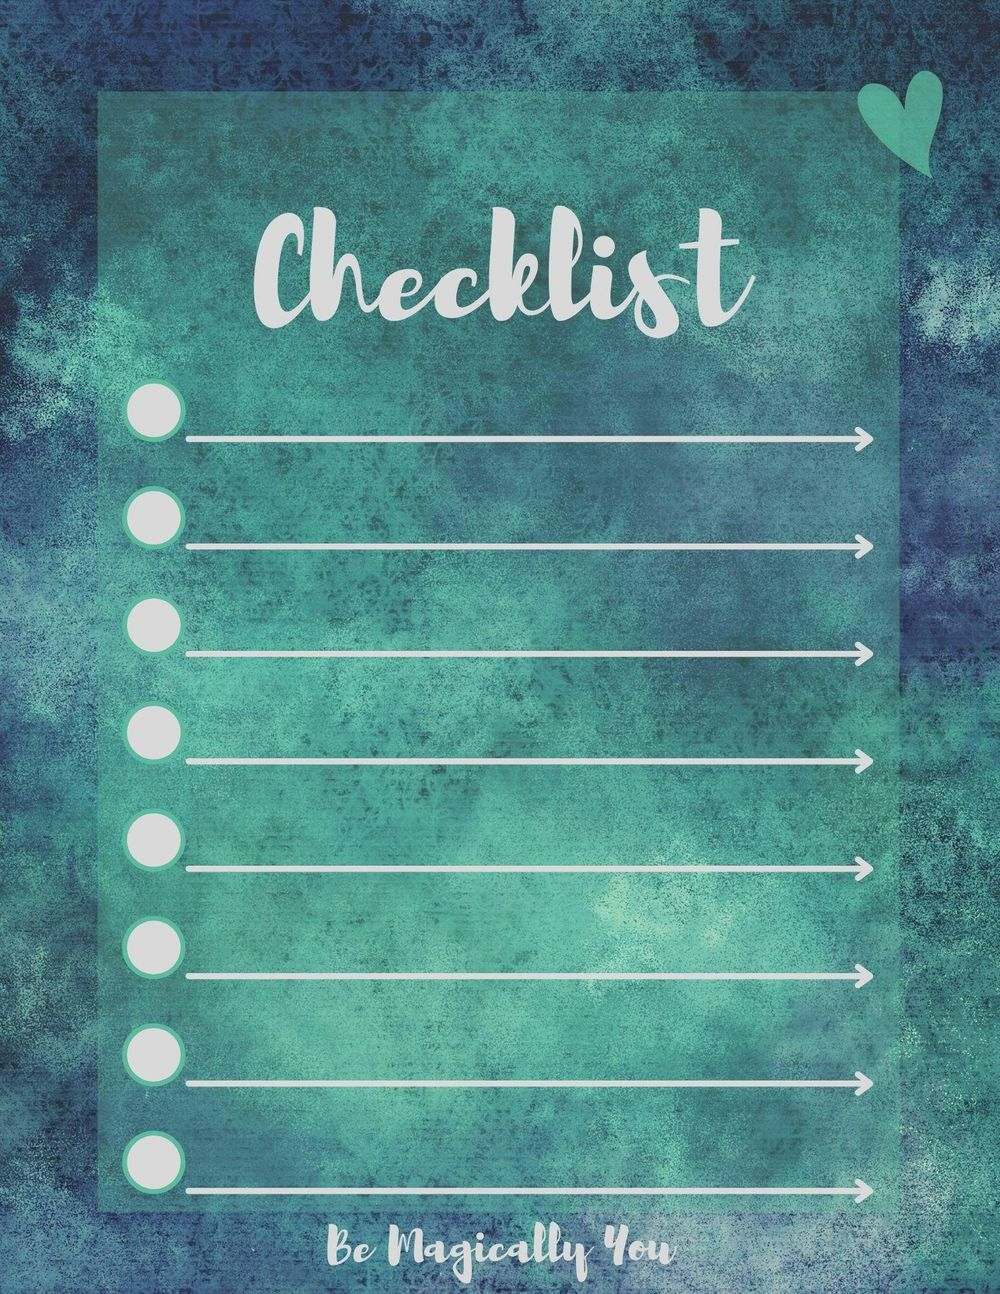 1st Checklist Designs Created - image 2 - student project